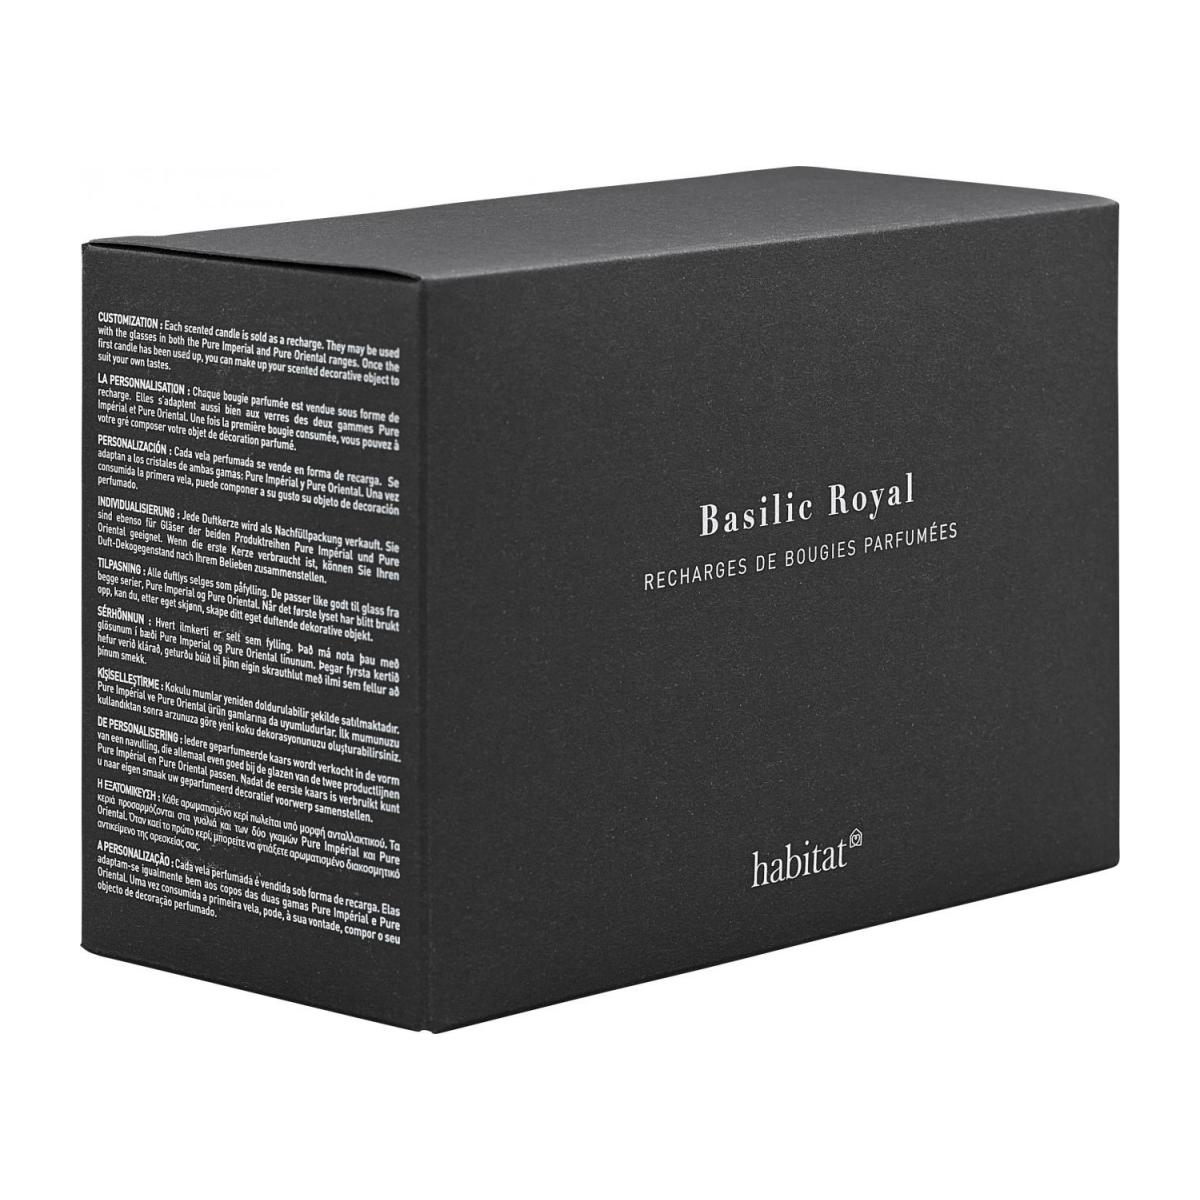 Refill for 2 medium Basil scented candles, 2 x 300 g n°2